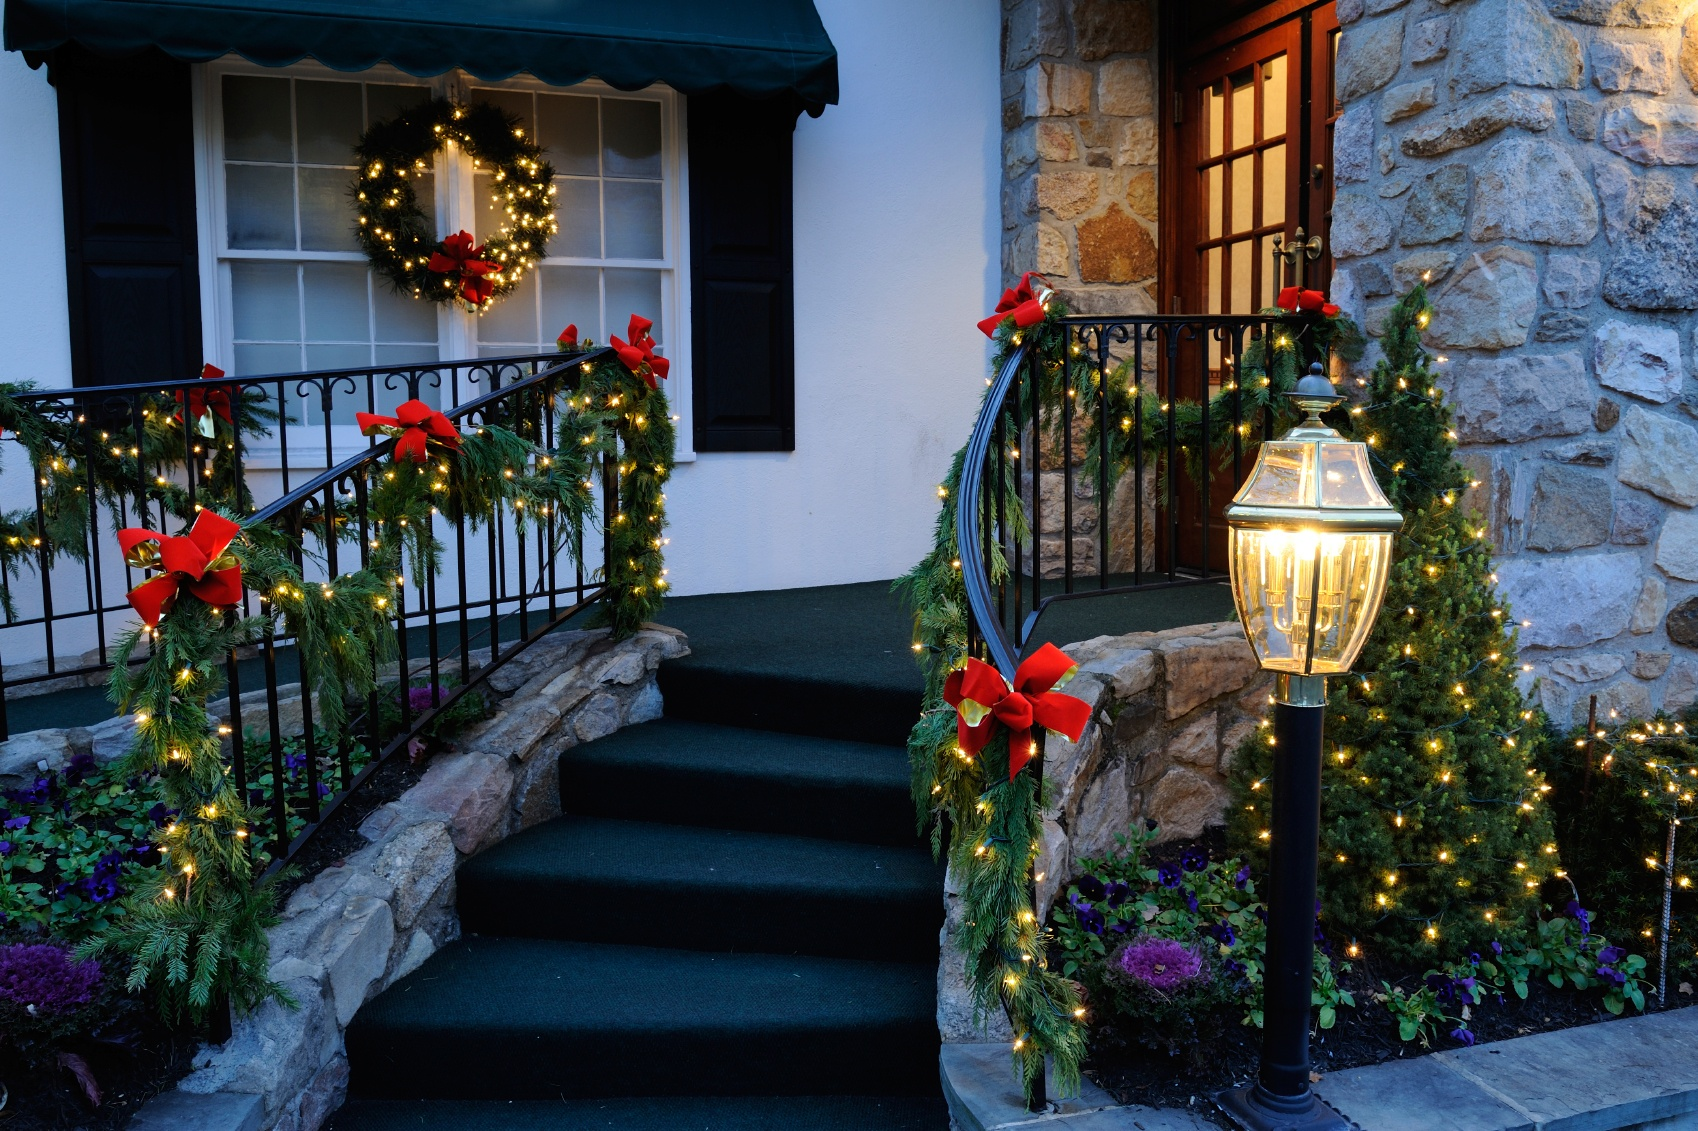 porch railing christmas ideas - Outdoor Porch Christmas Decorations